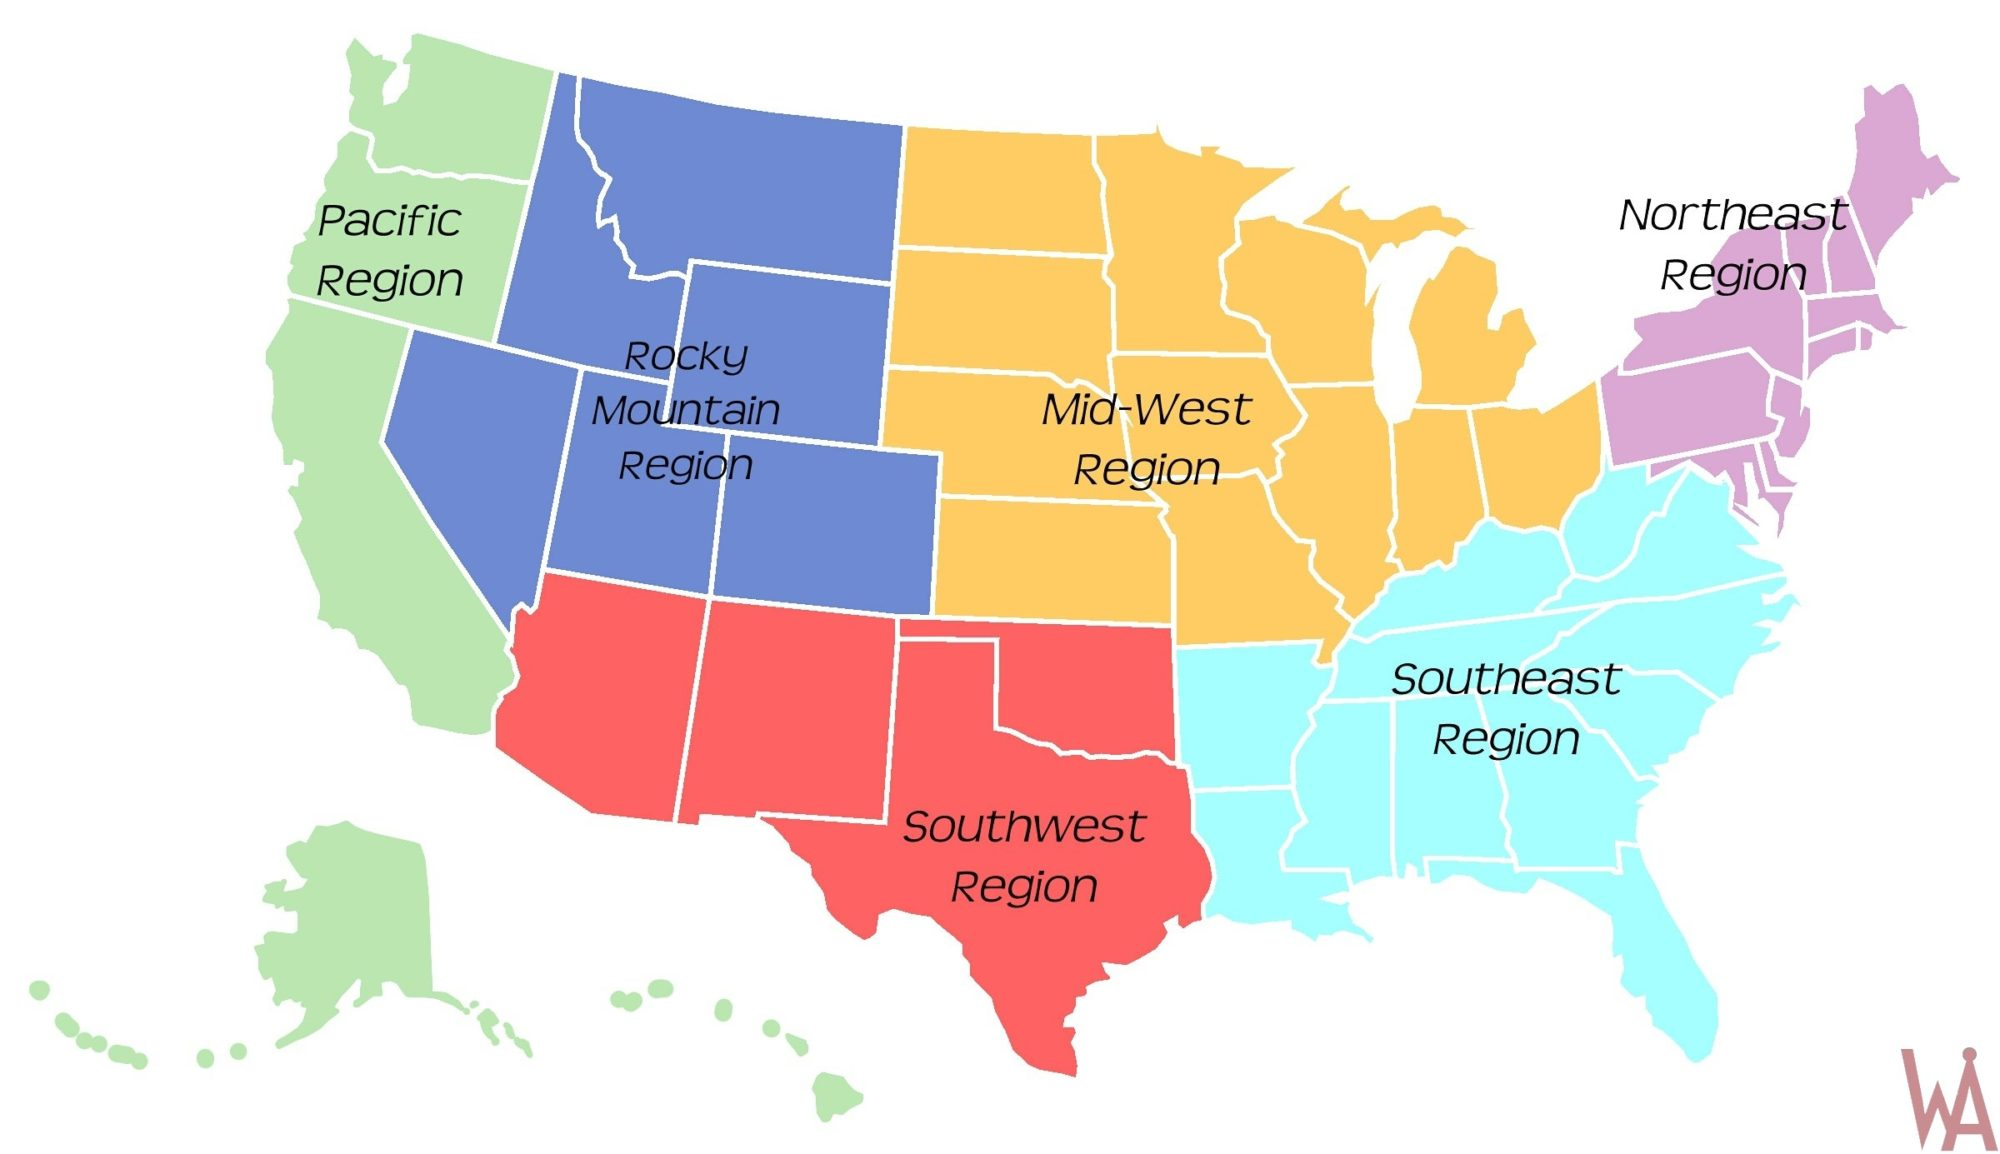 Region Maps Of The Usa